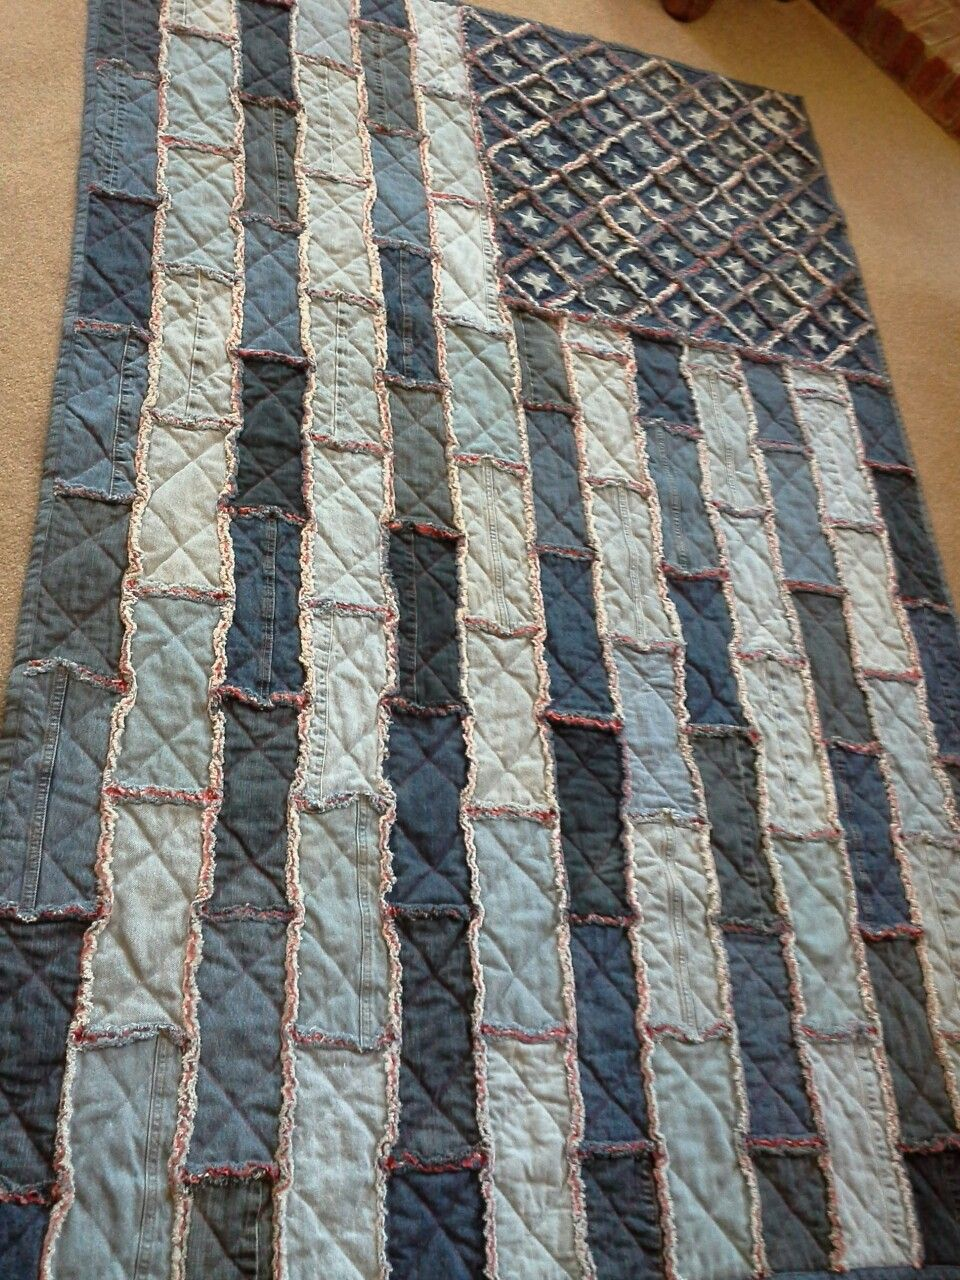 d4c8a6df Denim flag quilt from old jeans | Red white blue | Denim crafts ...